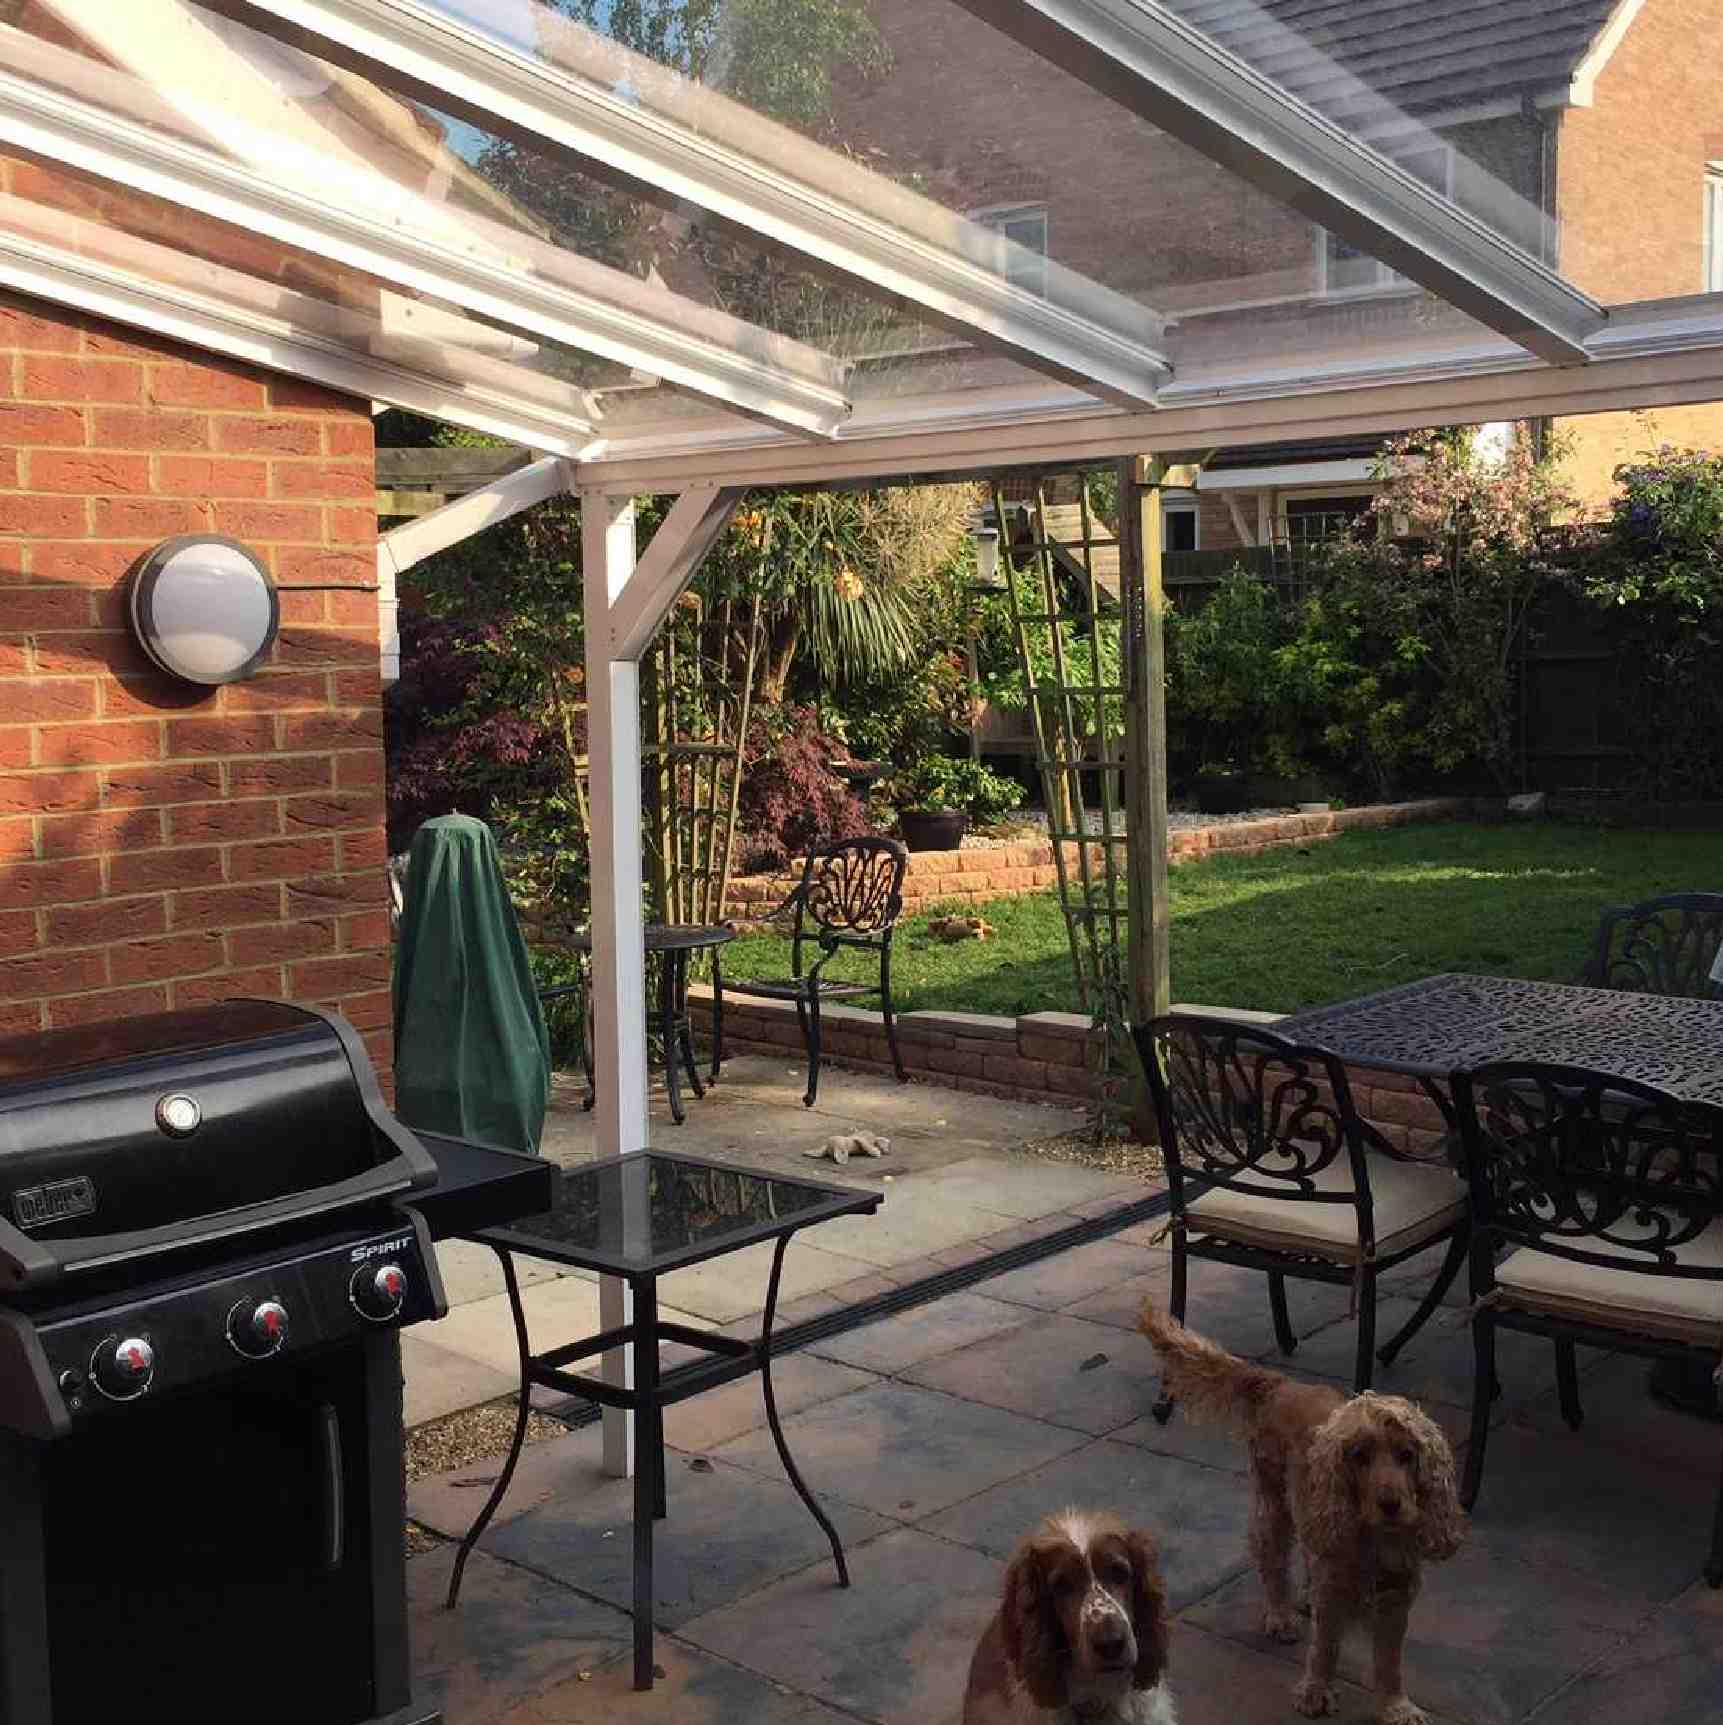 Omega Verandah with 16mm Polycarbonate Glazing - 4.2m (W) x 4.0m (P), (3) Supporting Posts